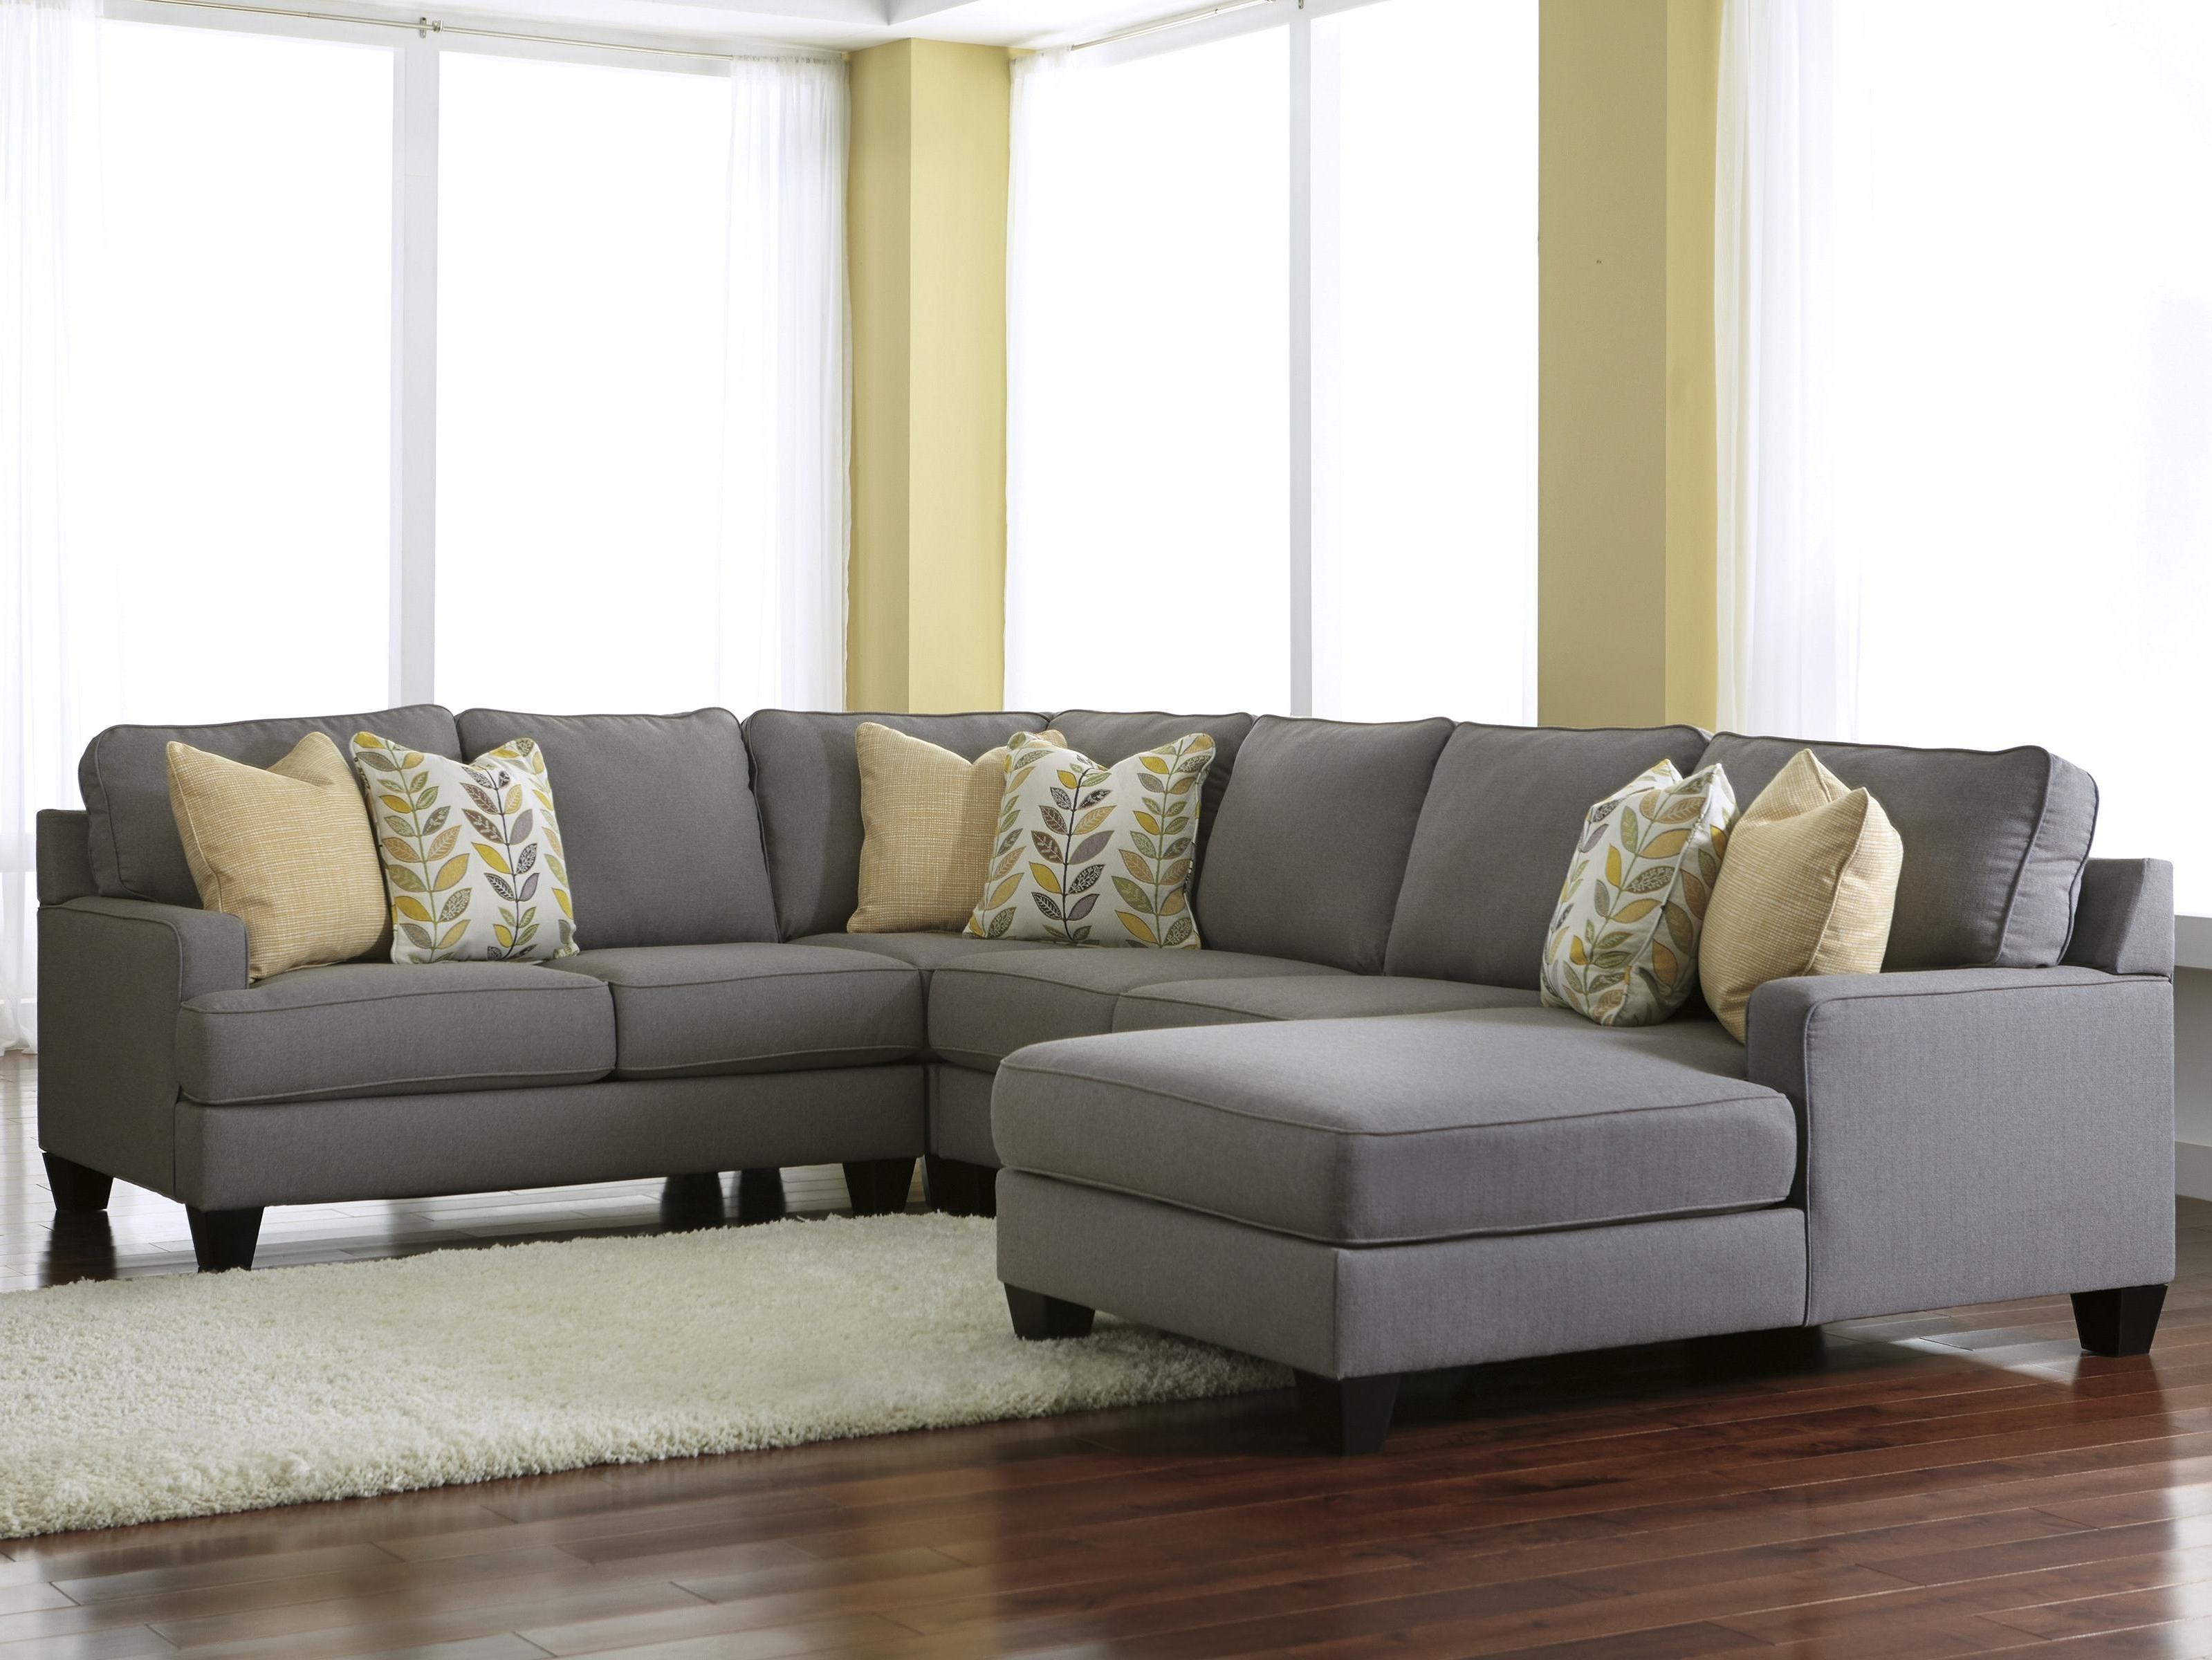 2017 Sofa ~ Comfy Sectional Sofa With Chaise Image Sectional Sofa With With Grey Sectionals With Chaise (View 3 of 15)